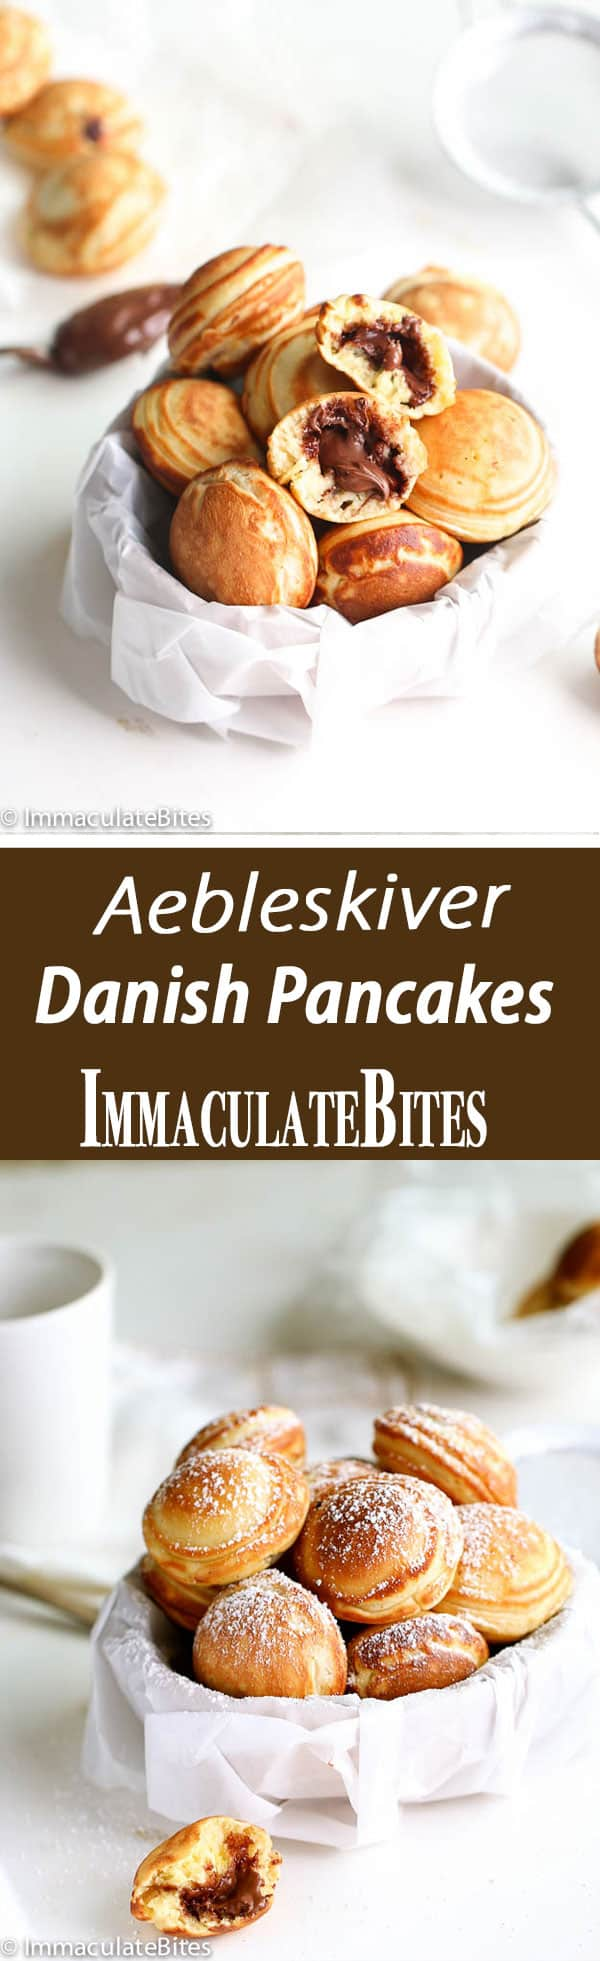 Aebleskiver Danish Pancakes stuffed with Nutella